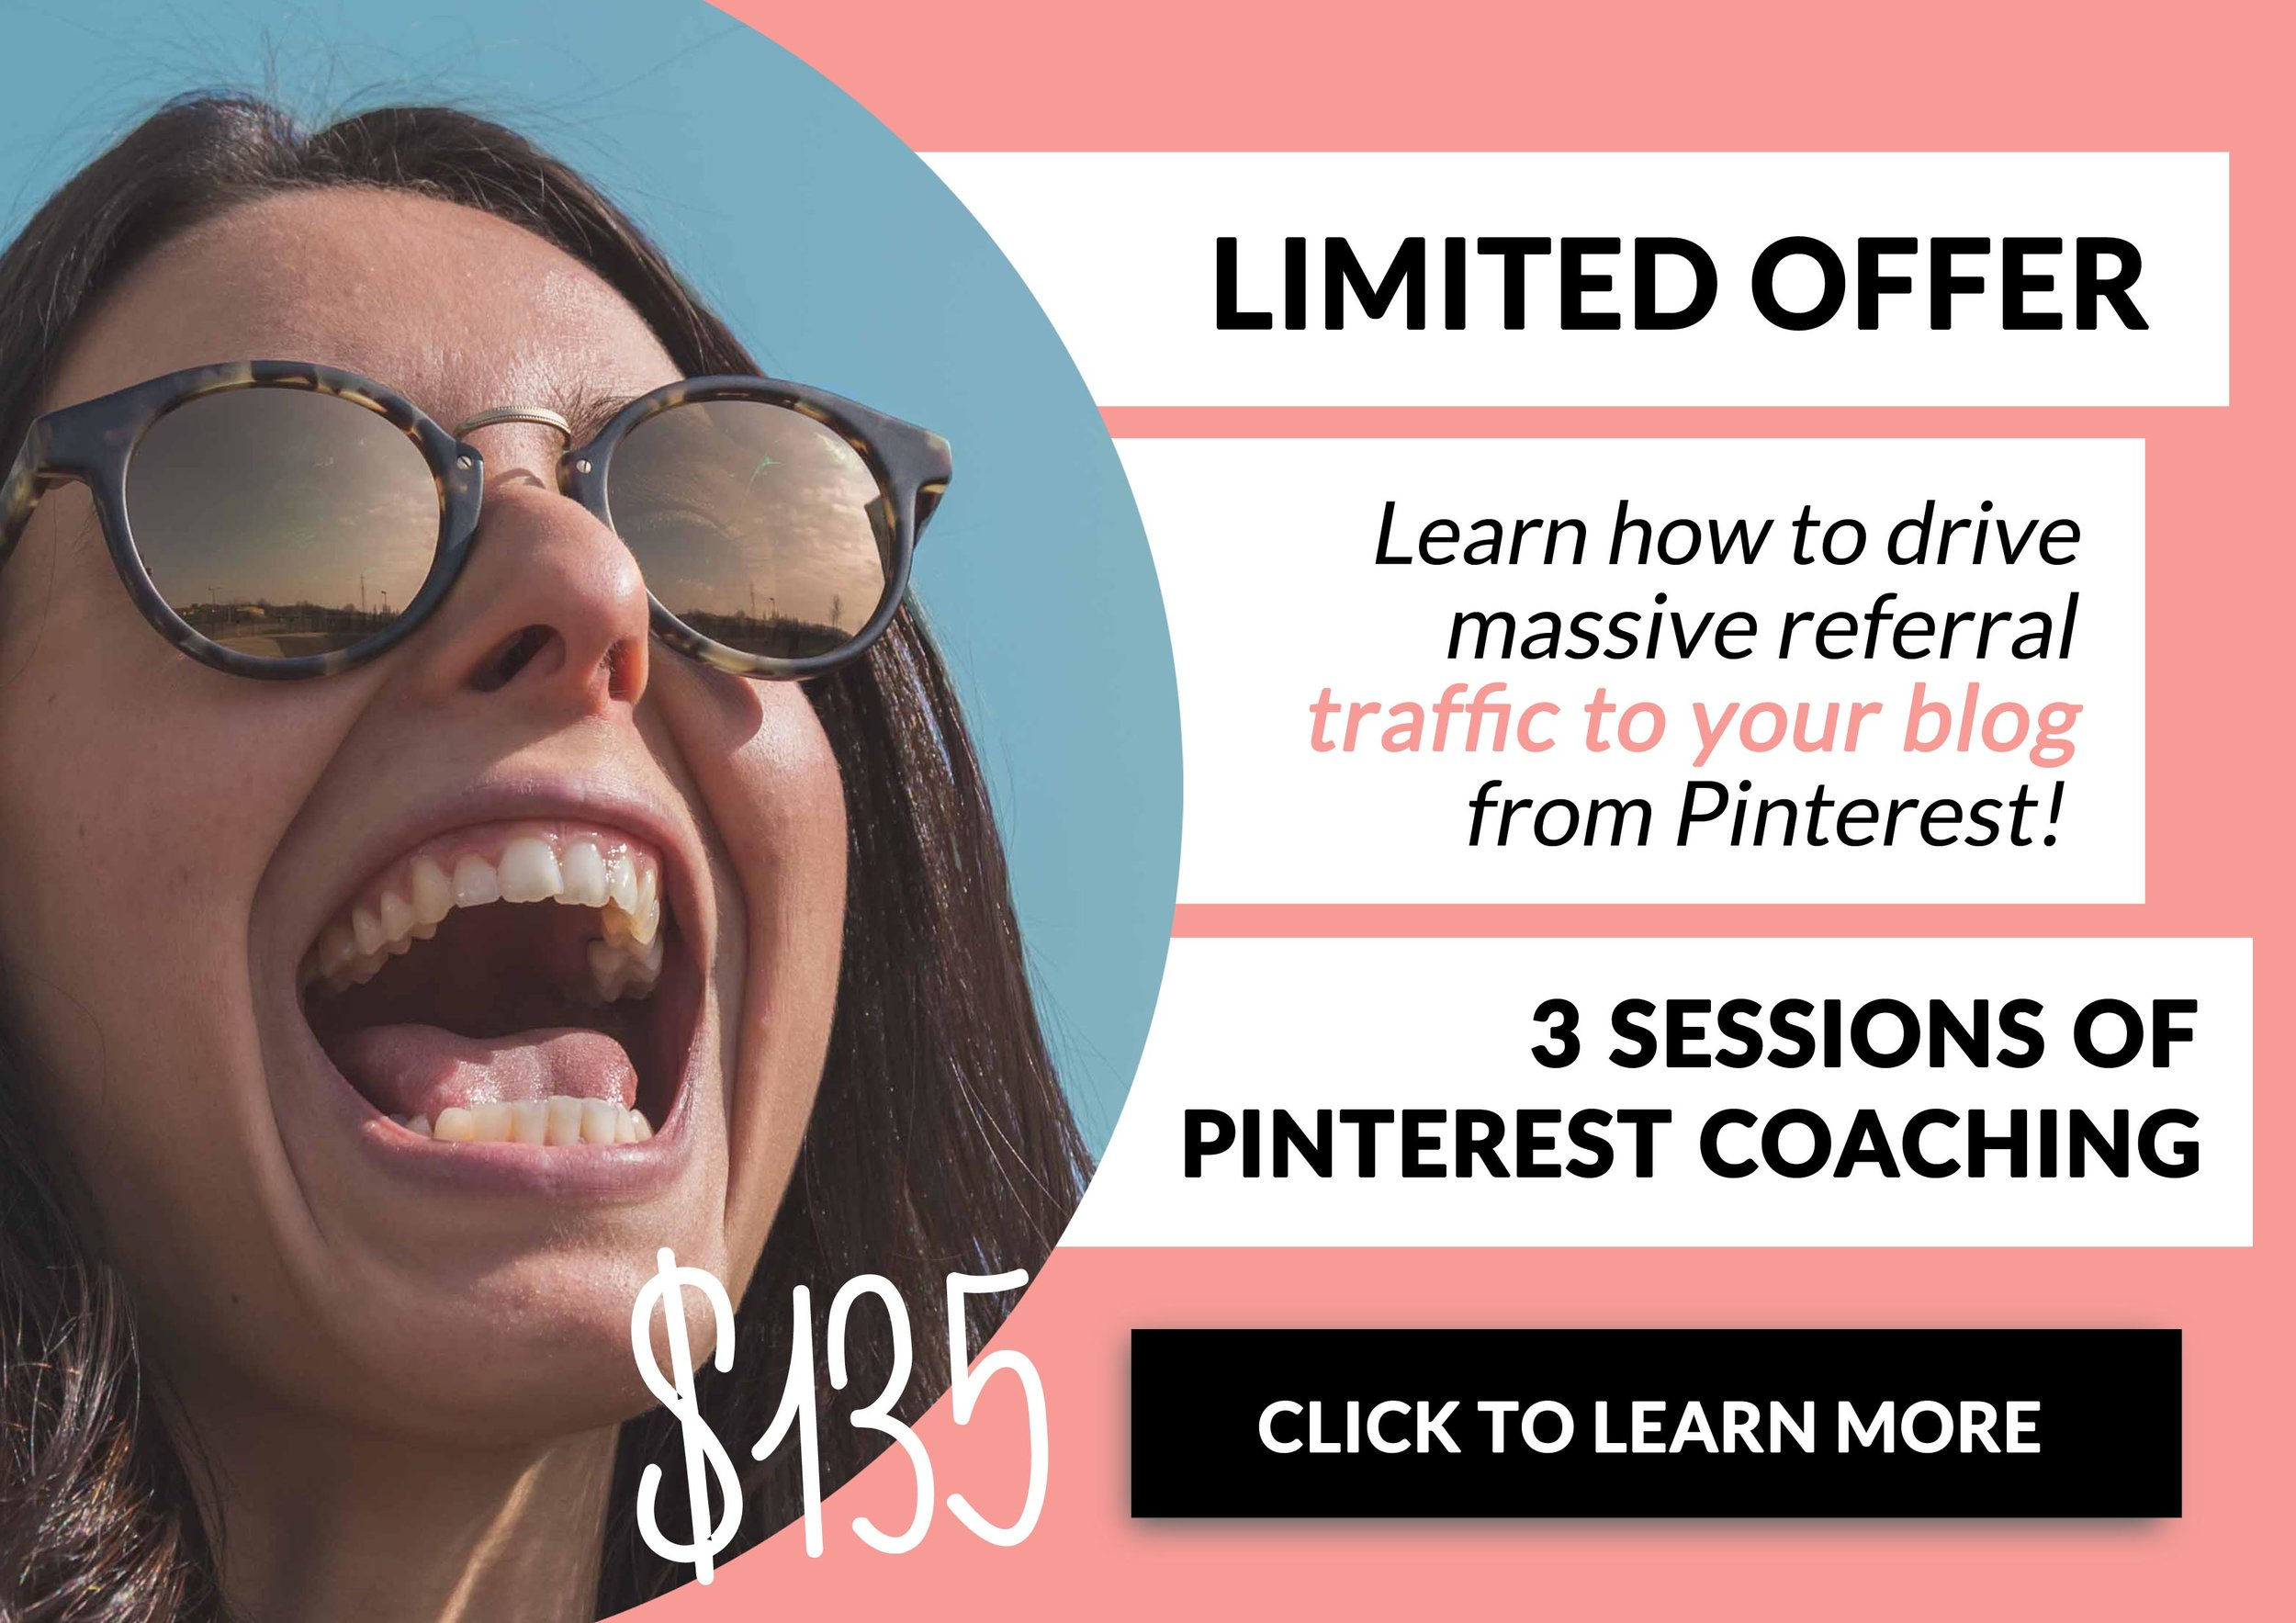 Drive Traffic To Your Blog! Pinterest Coaching Offer - 3 Sessions for $135